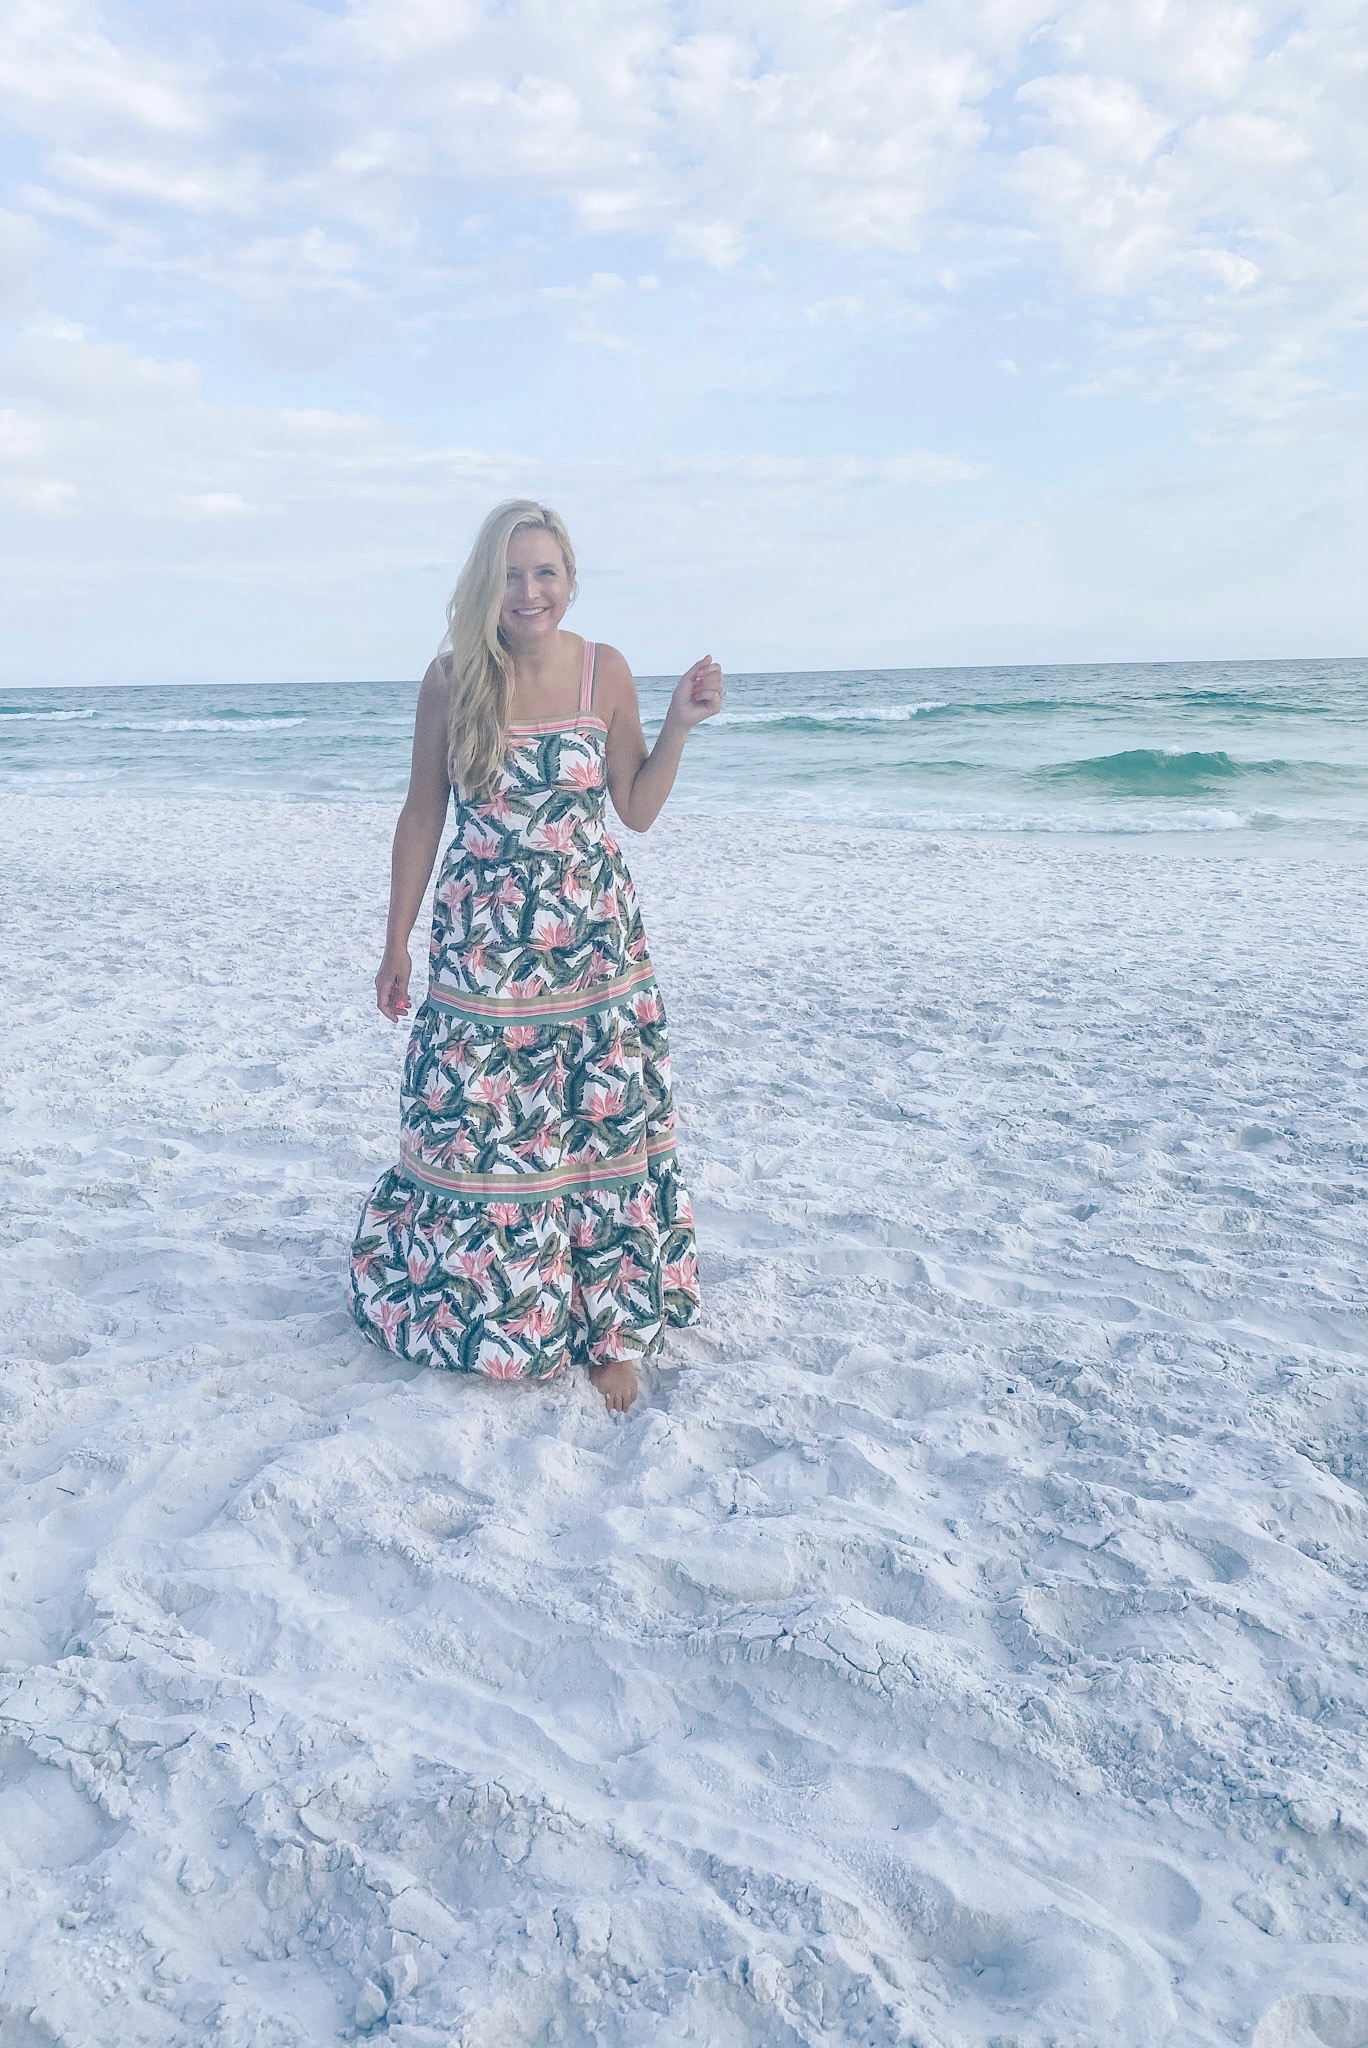 Summer Outfit Ideas by popular Houston fashion blog, The House of Fancy: image of a woman standing on a white sand beach and wearing a pink floral print maxi dress.